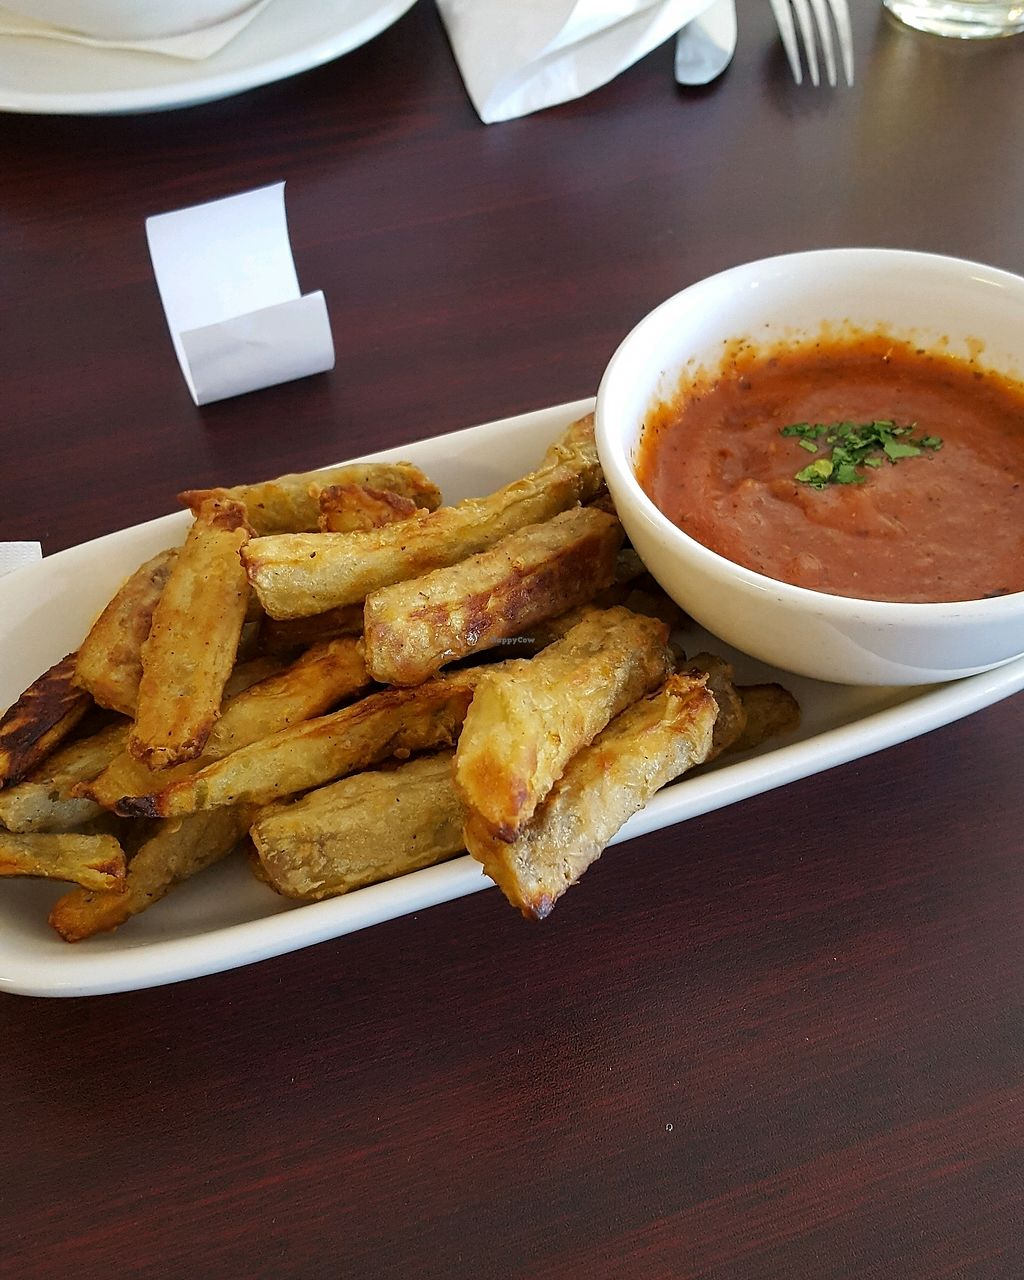 """Photo of Terra  by <a href=""""/members/profile/KimStortz"""">KimStortz</a> <br/>eggplant fries <br/> October 28, 2017  - <a href='/contact/abuse/image/84622/319489'>Report</a>"""